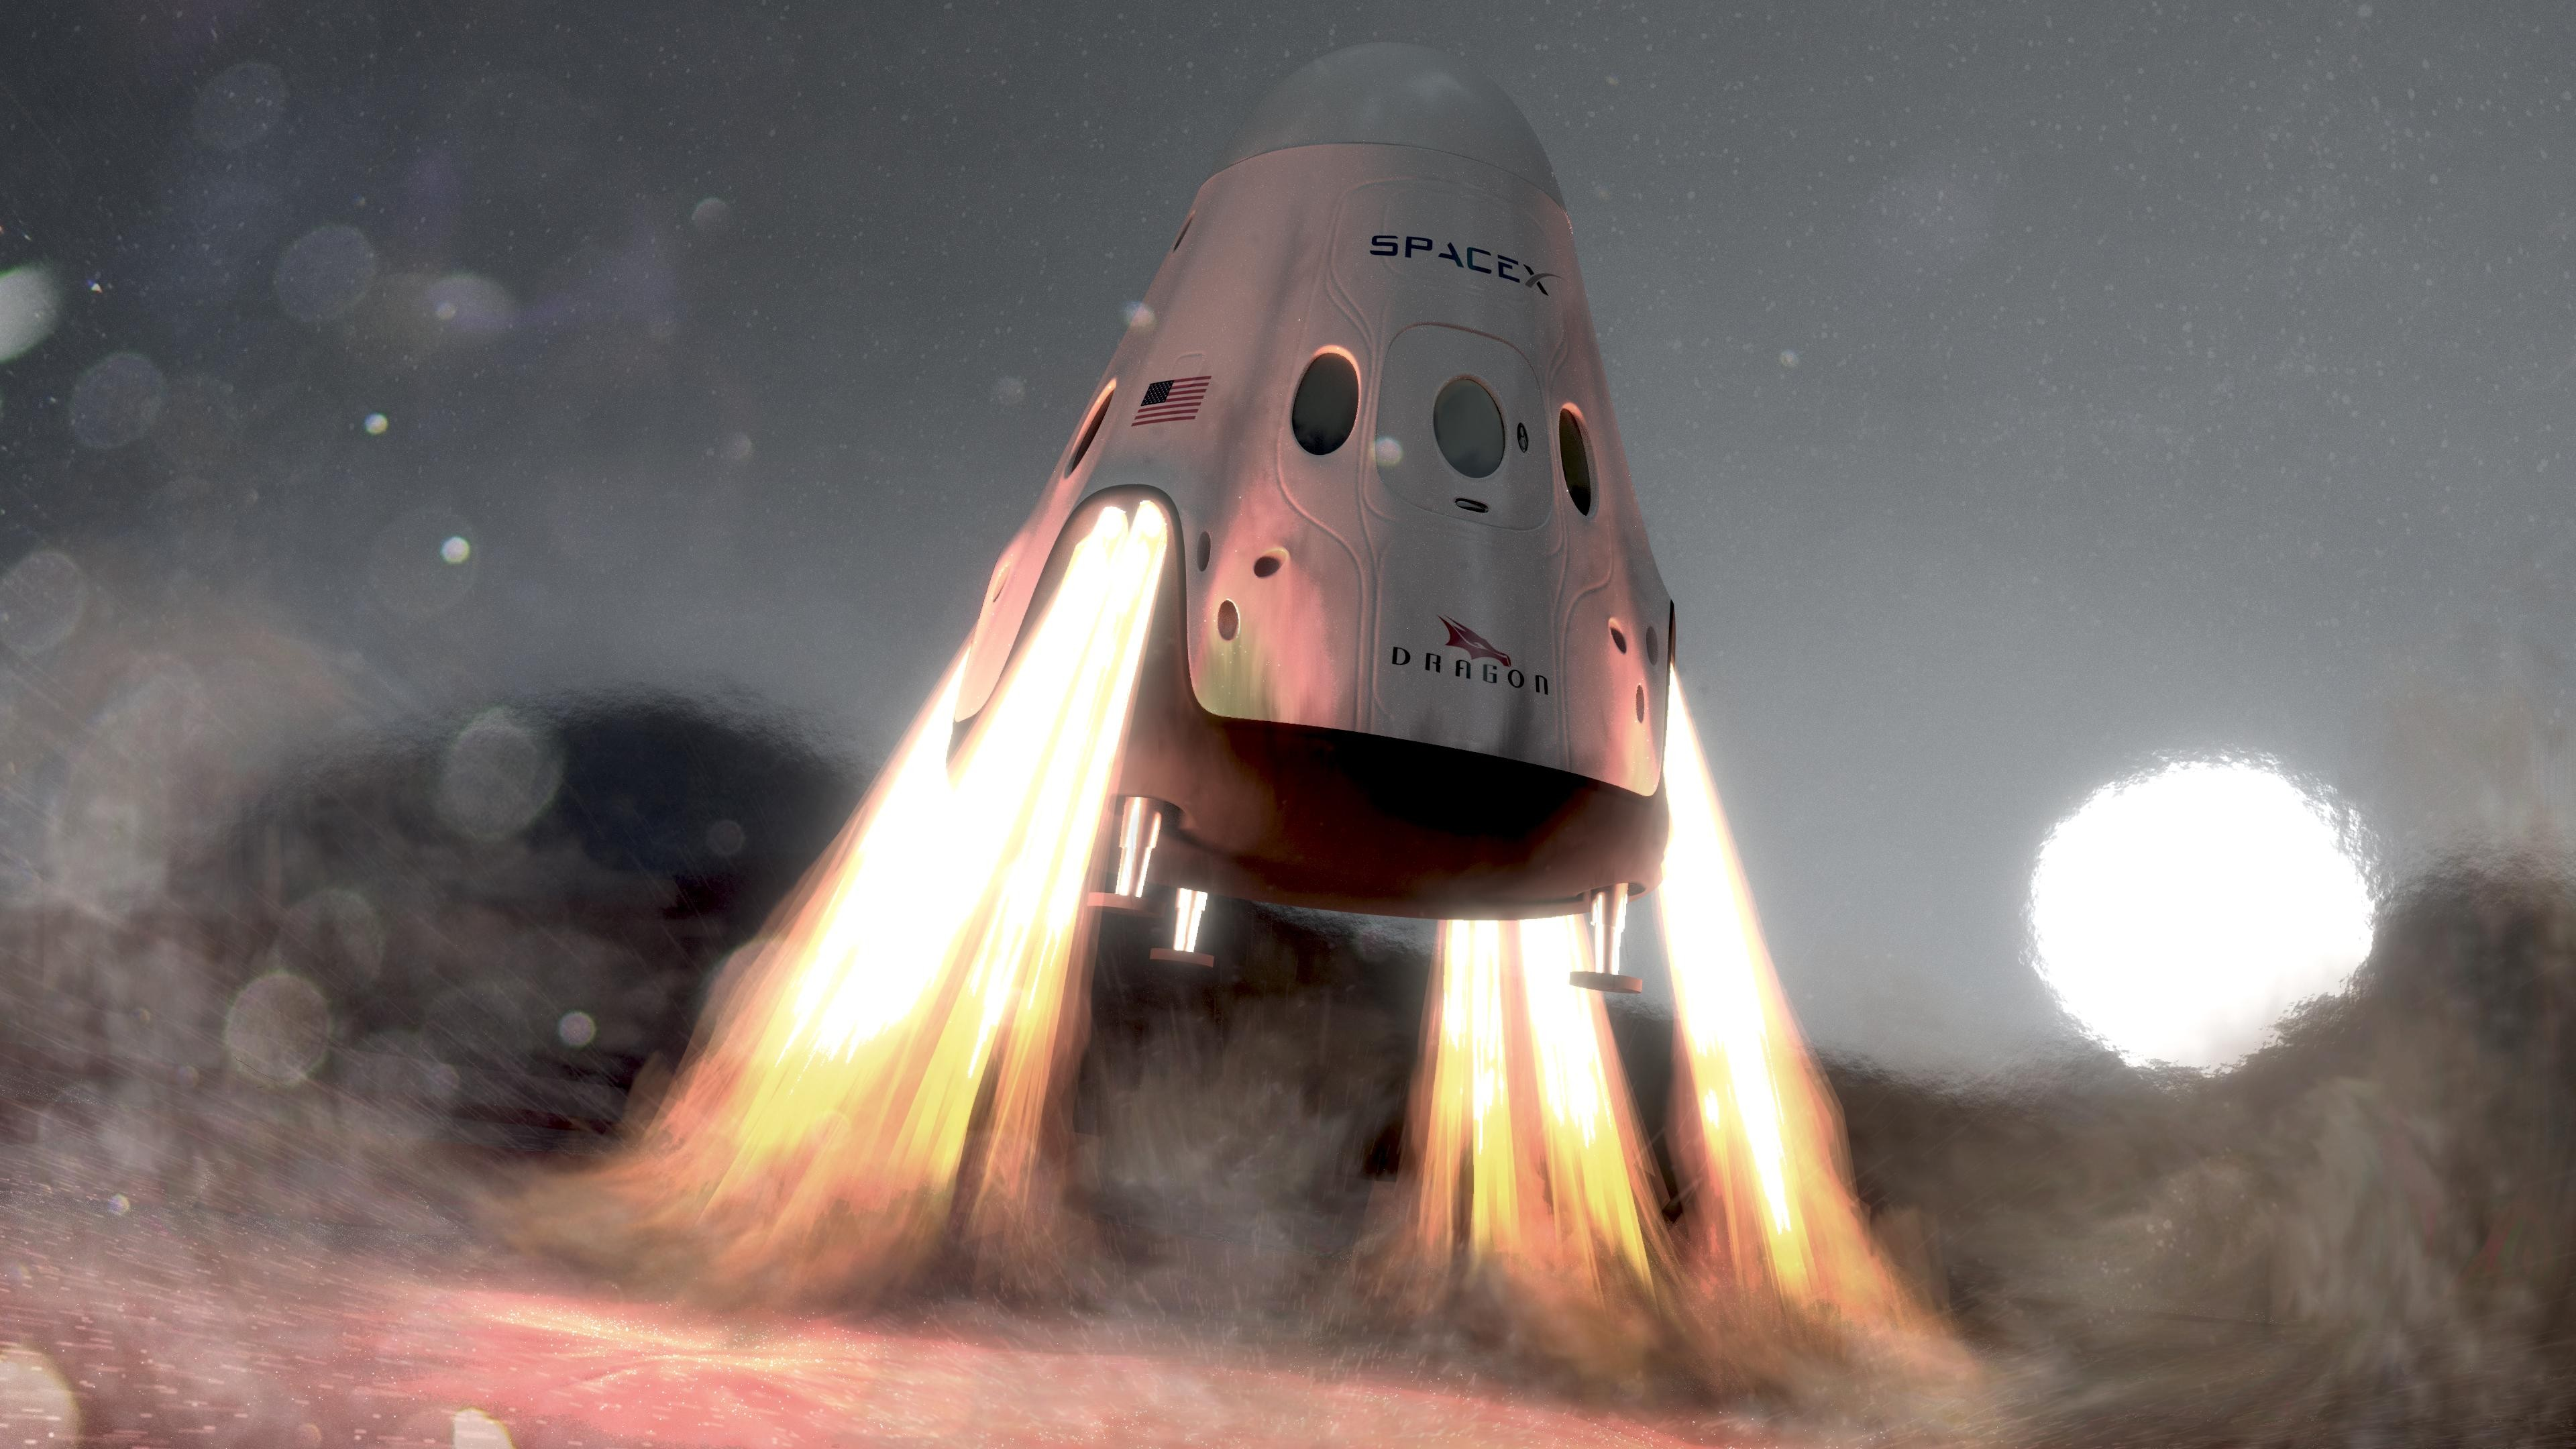 Best 51 SpaceX Dragon Wallpaper on HipWallpaper Awesome Dragon 3840x2160